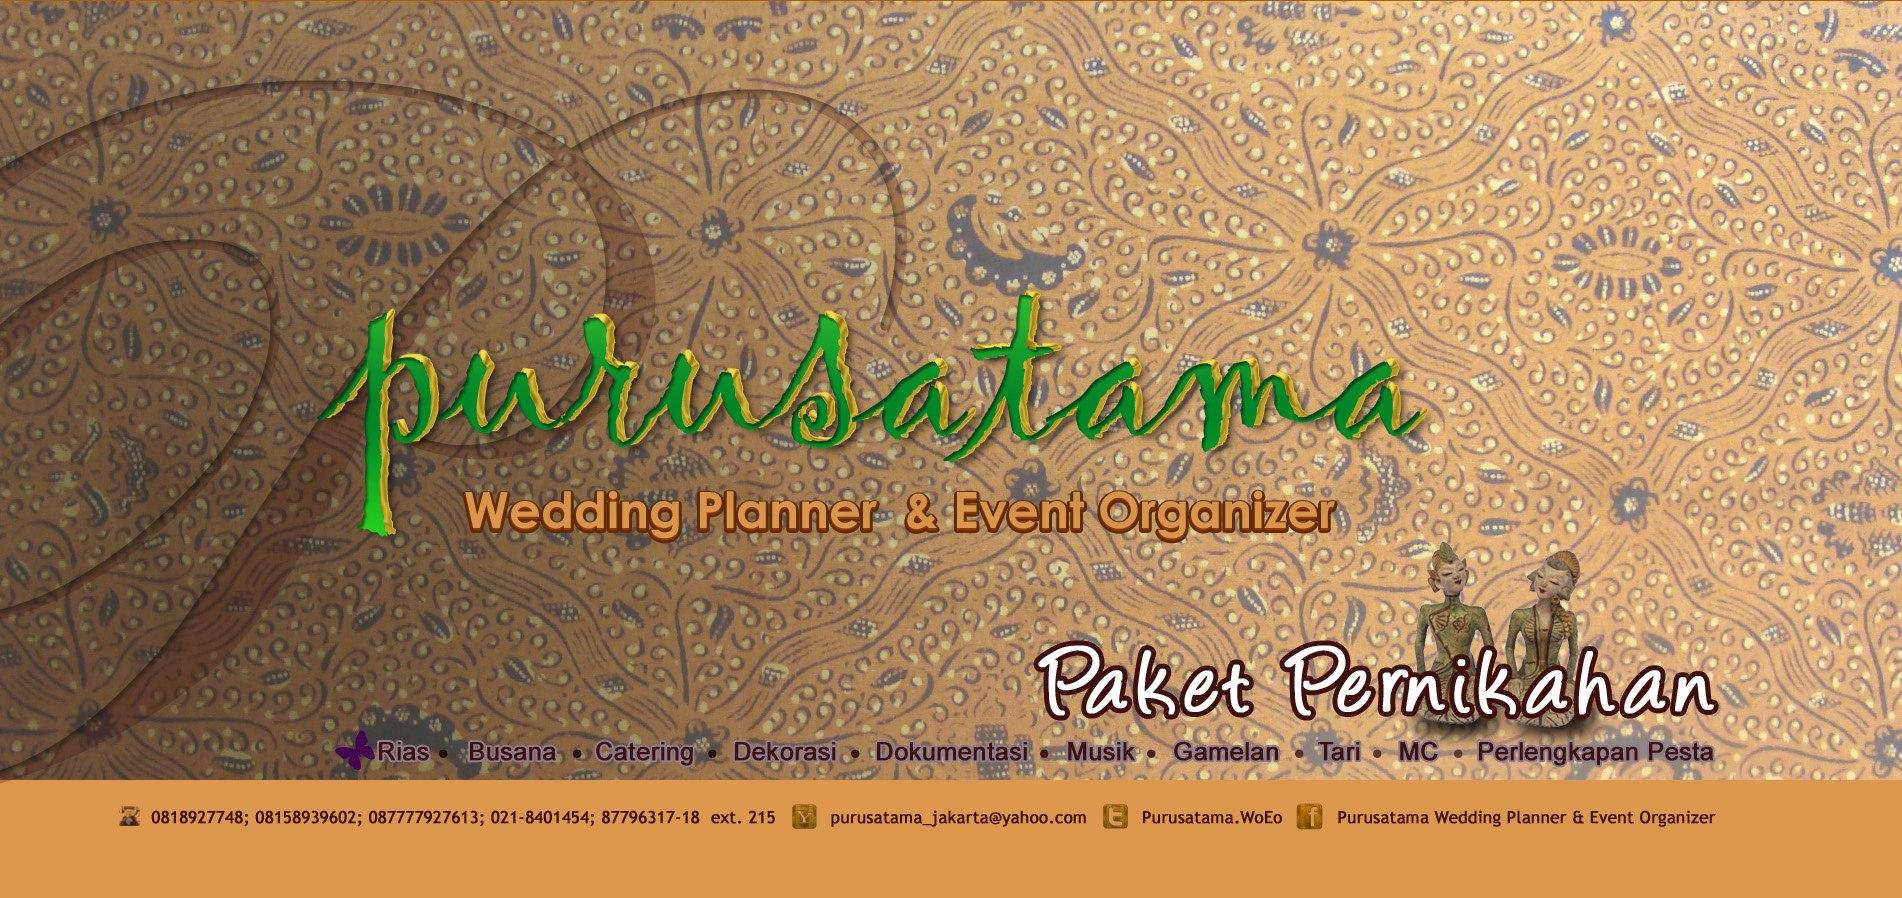 Purusatama Wedding Planner & Event Organizer